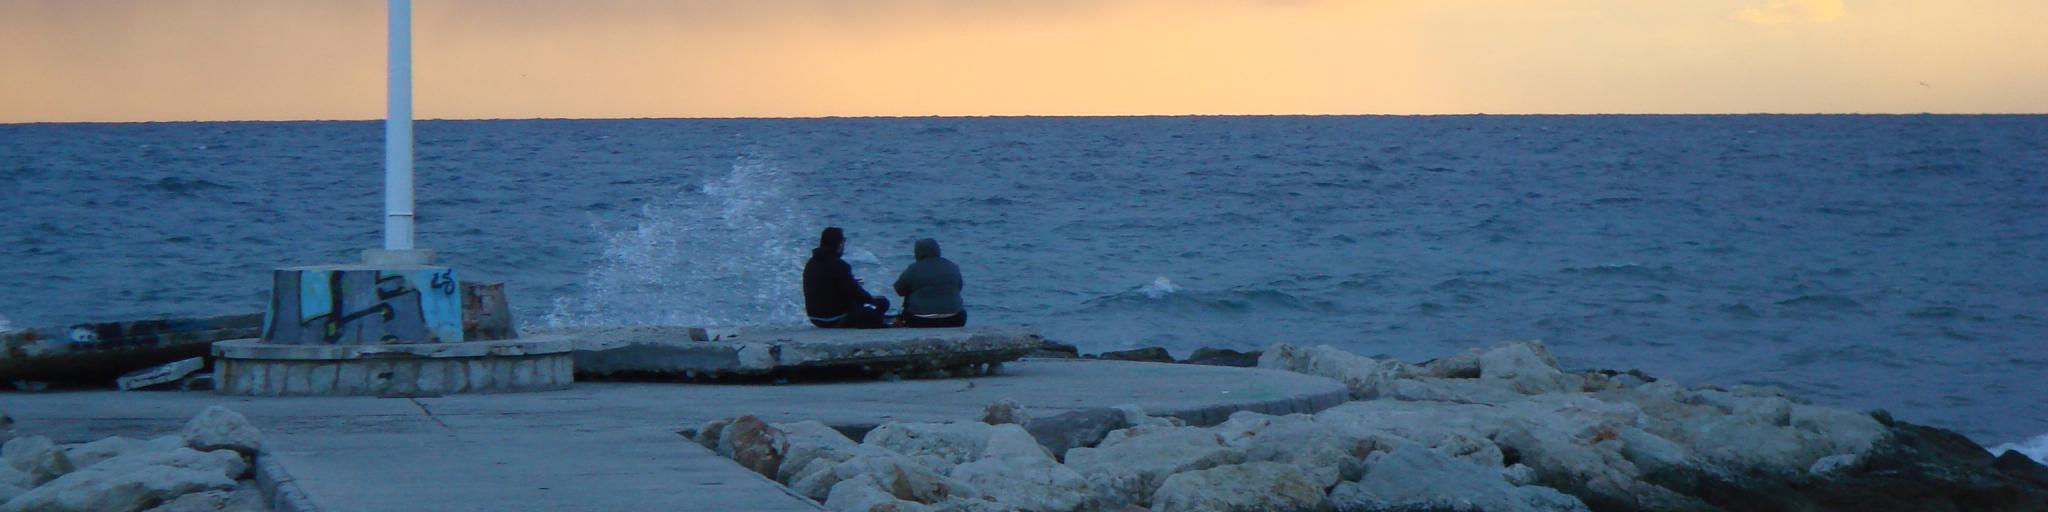 Two people watch the sun set over Pedregalejo Beach Malaga